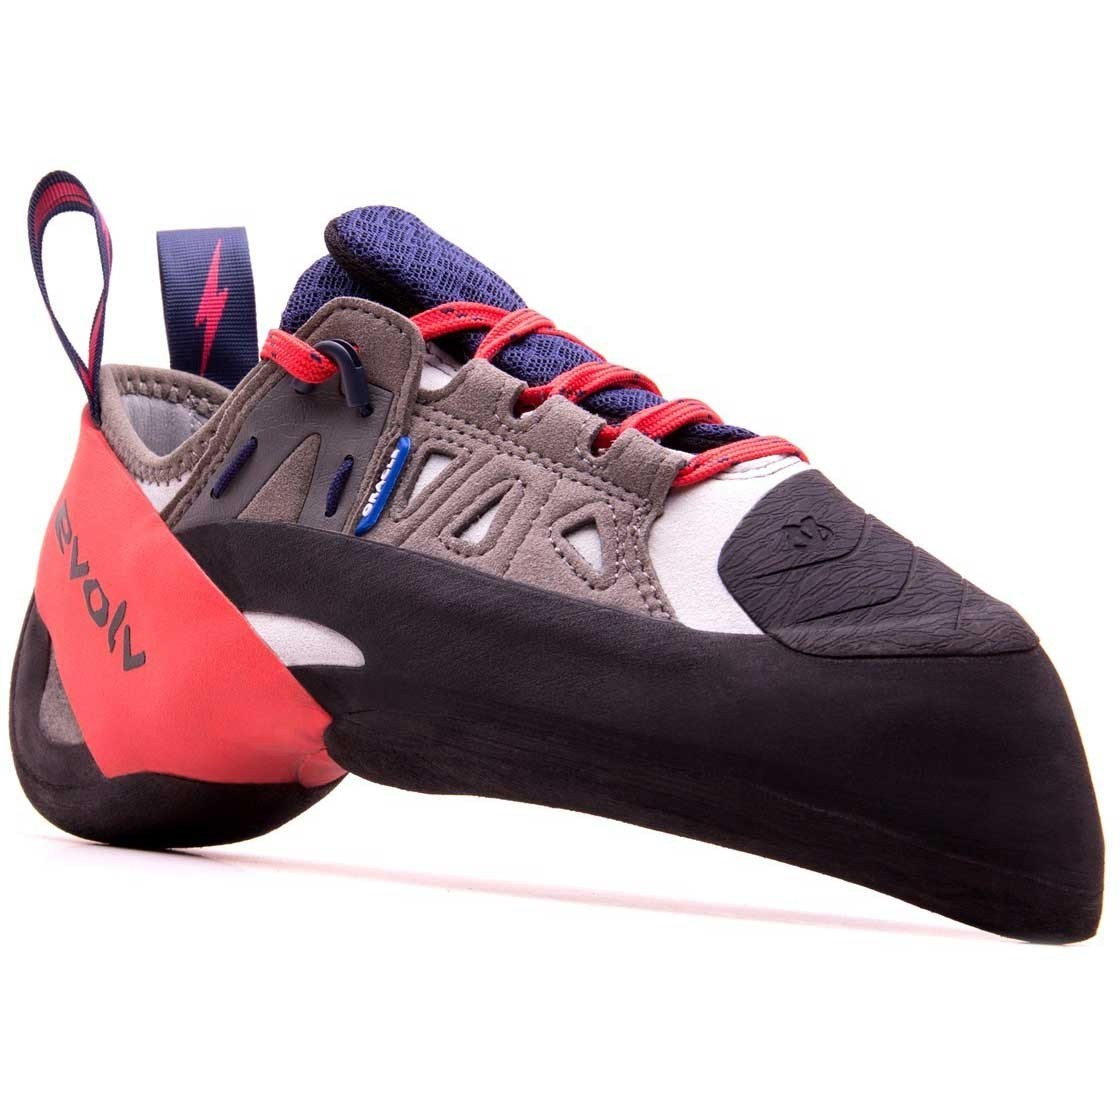 Evolv Oracle Climbing Shoe - Blue/Grey/Red